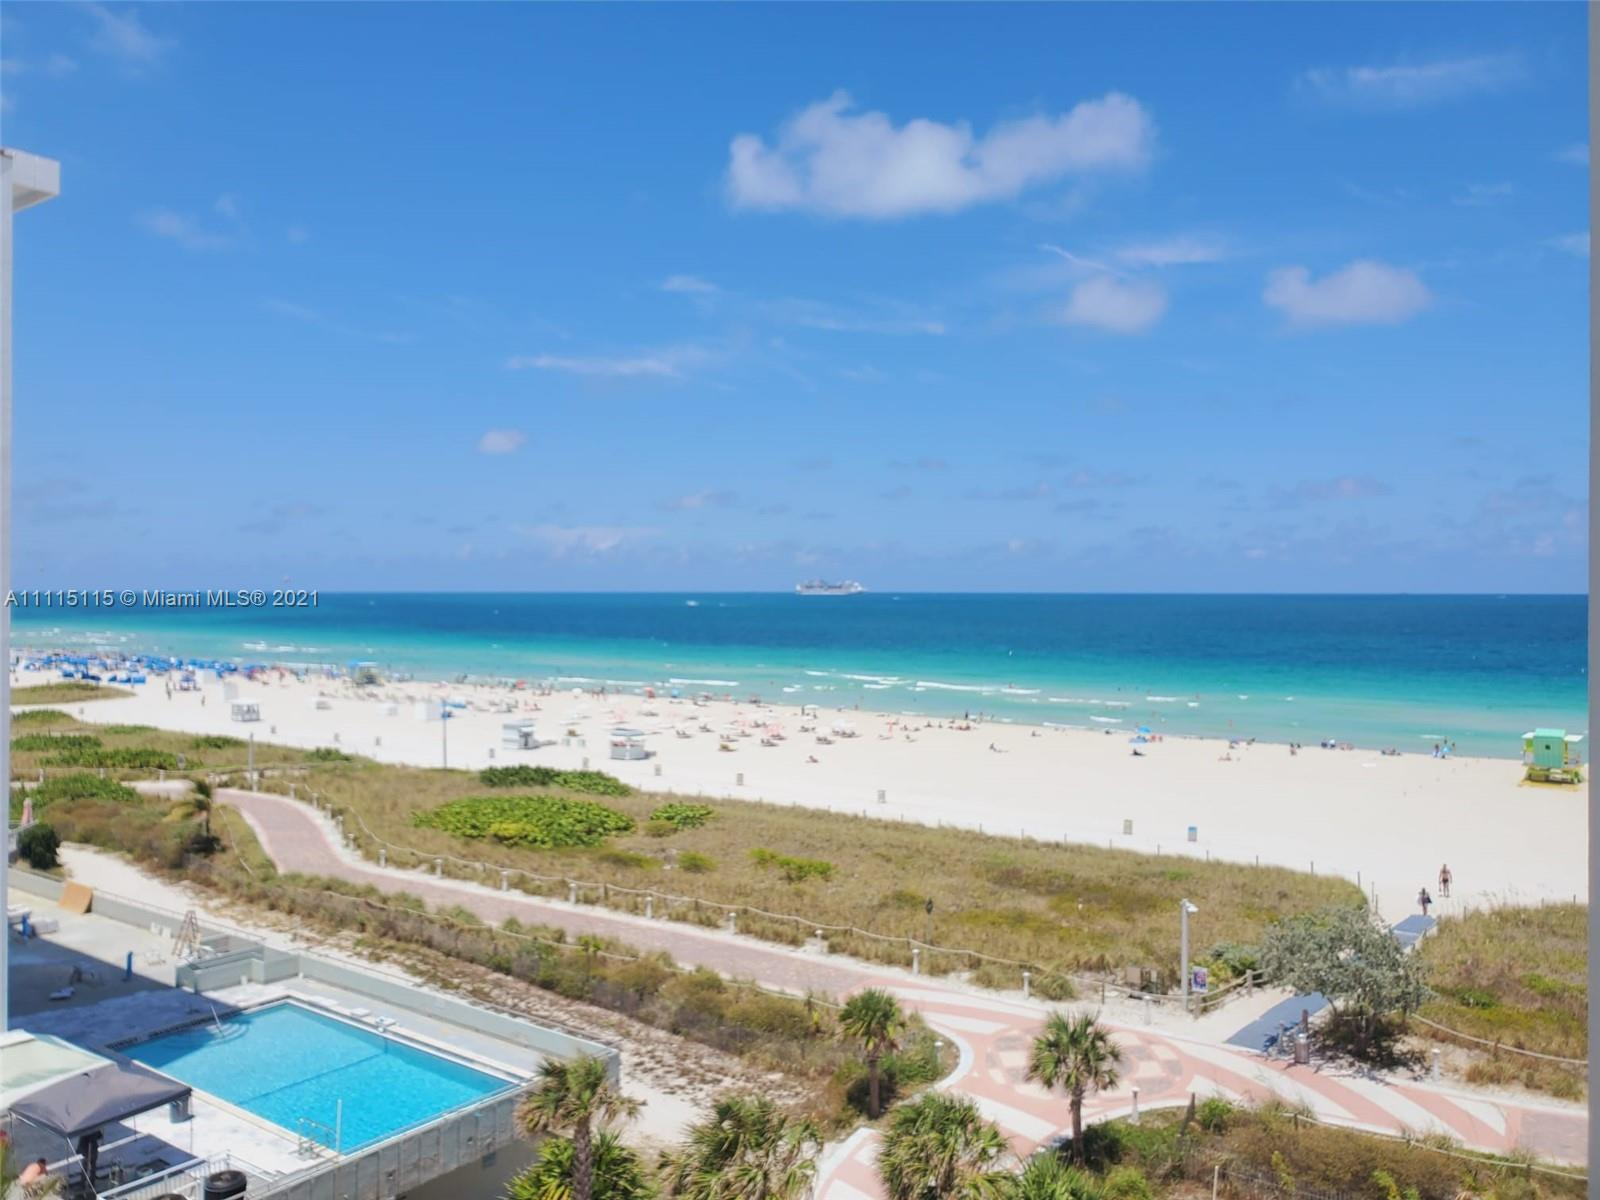 SPECTACULAR STUDIO IN THE HEART OF SOUTH BEACH WITH BREATHTAKING OCEAN AND CITY VIEWS!!! COMPLETELY